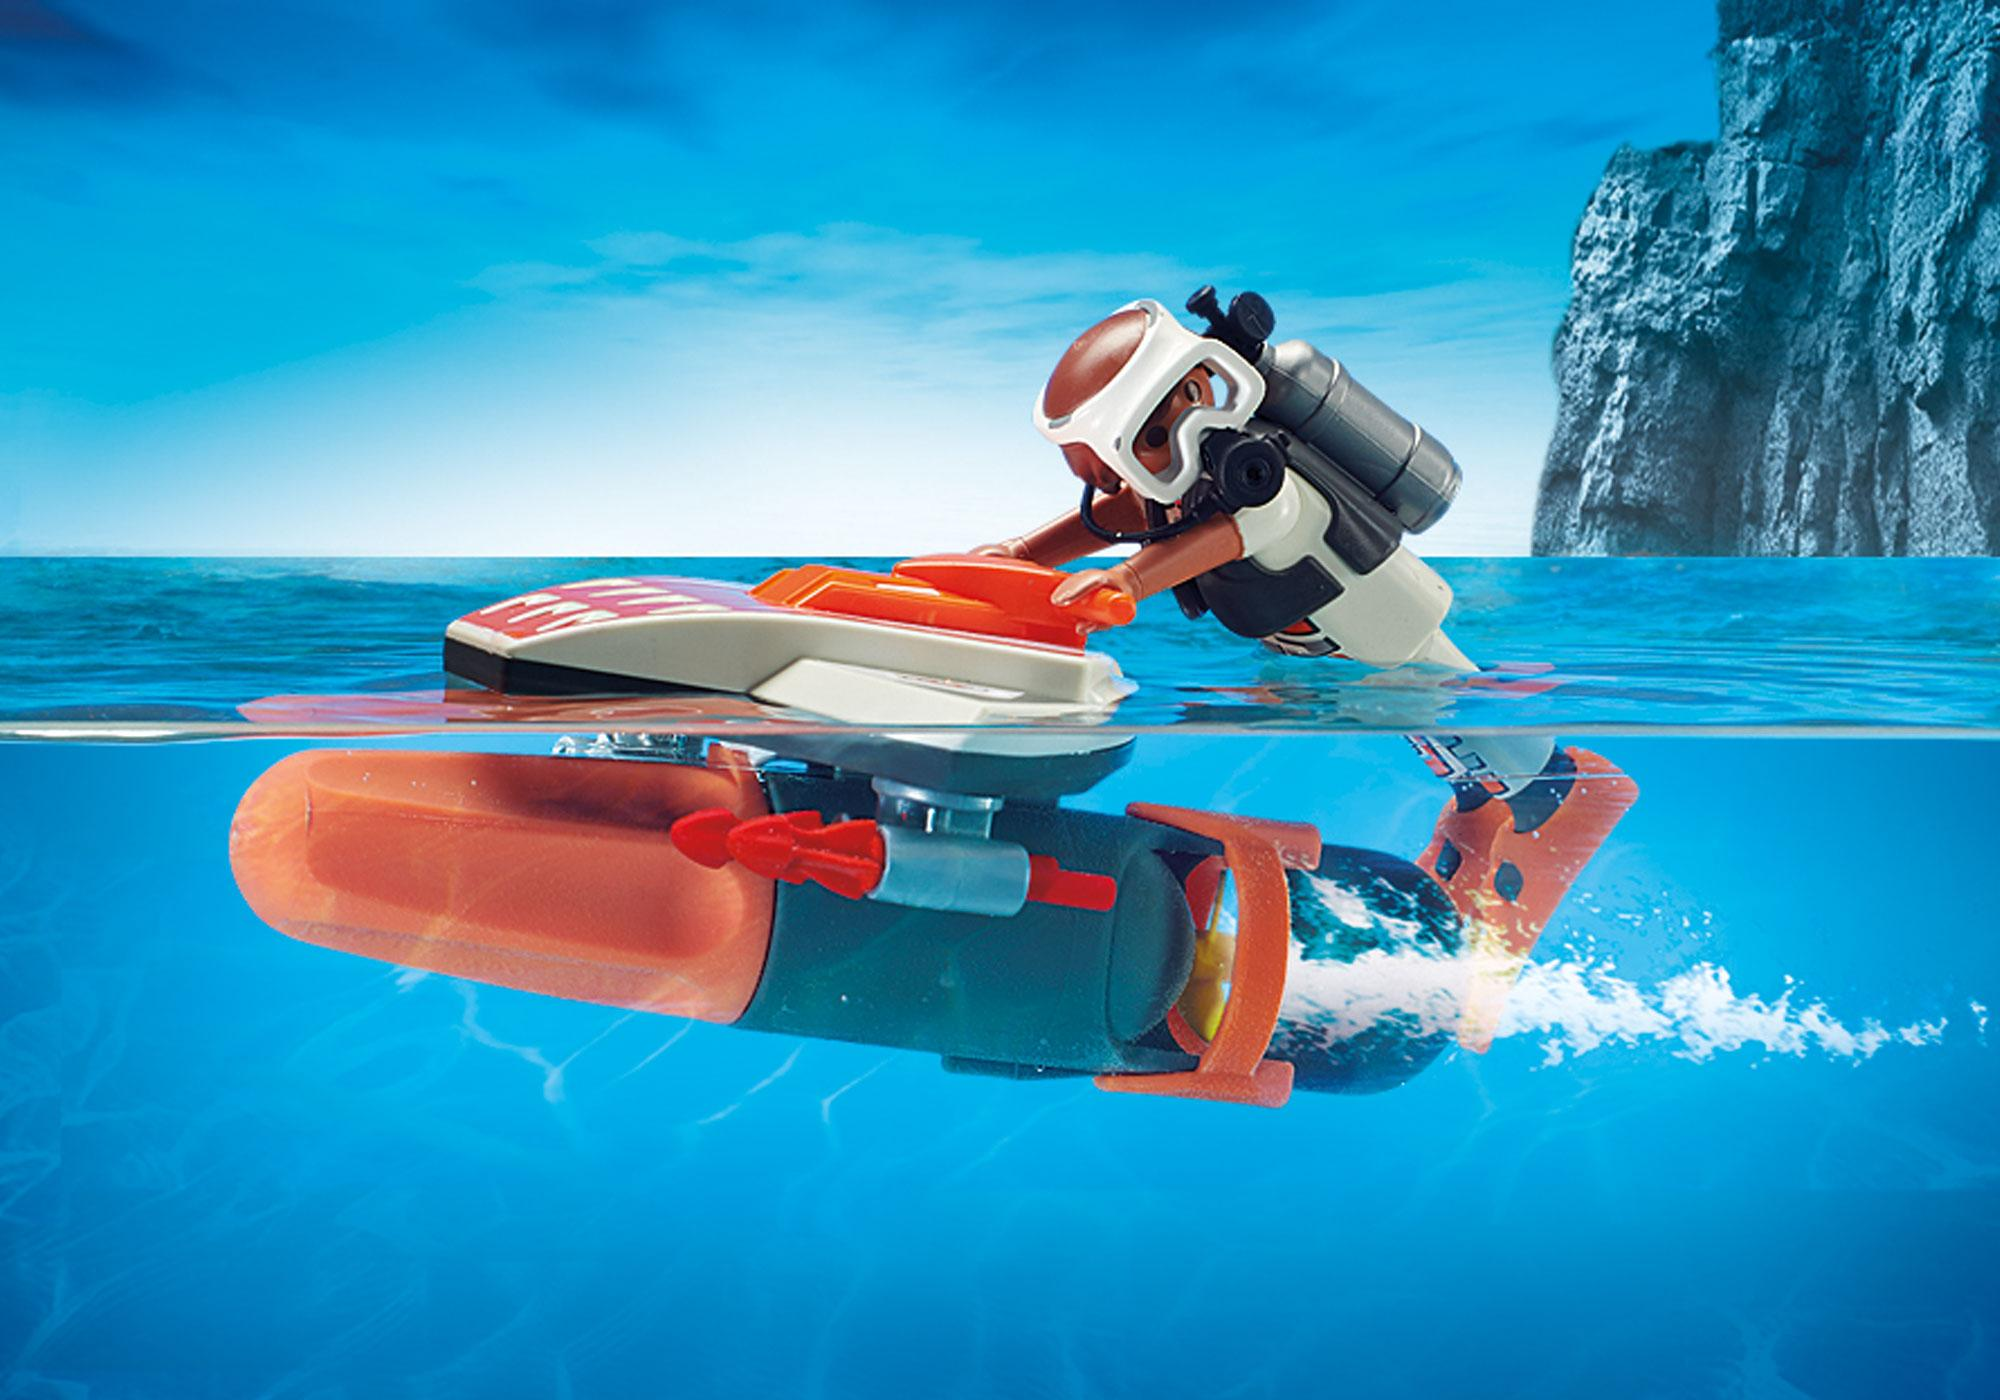 http://media.playmobil.com/i/playmobil/70004_product_extra2/SPY TEAM Underwater Wing